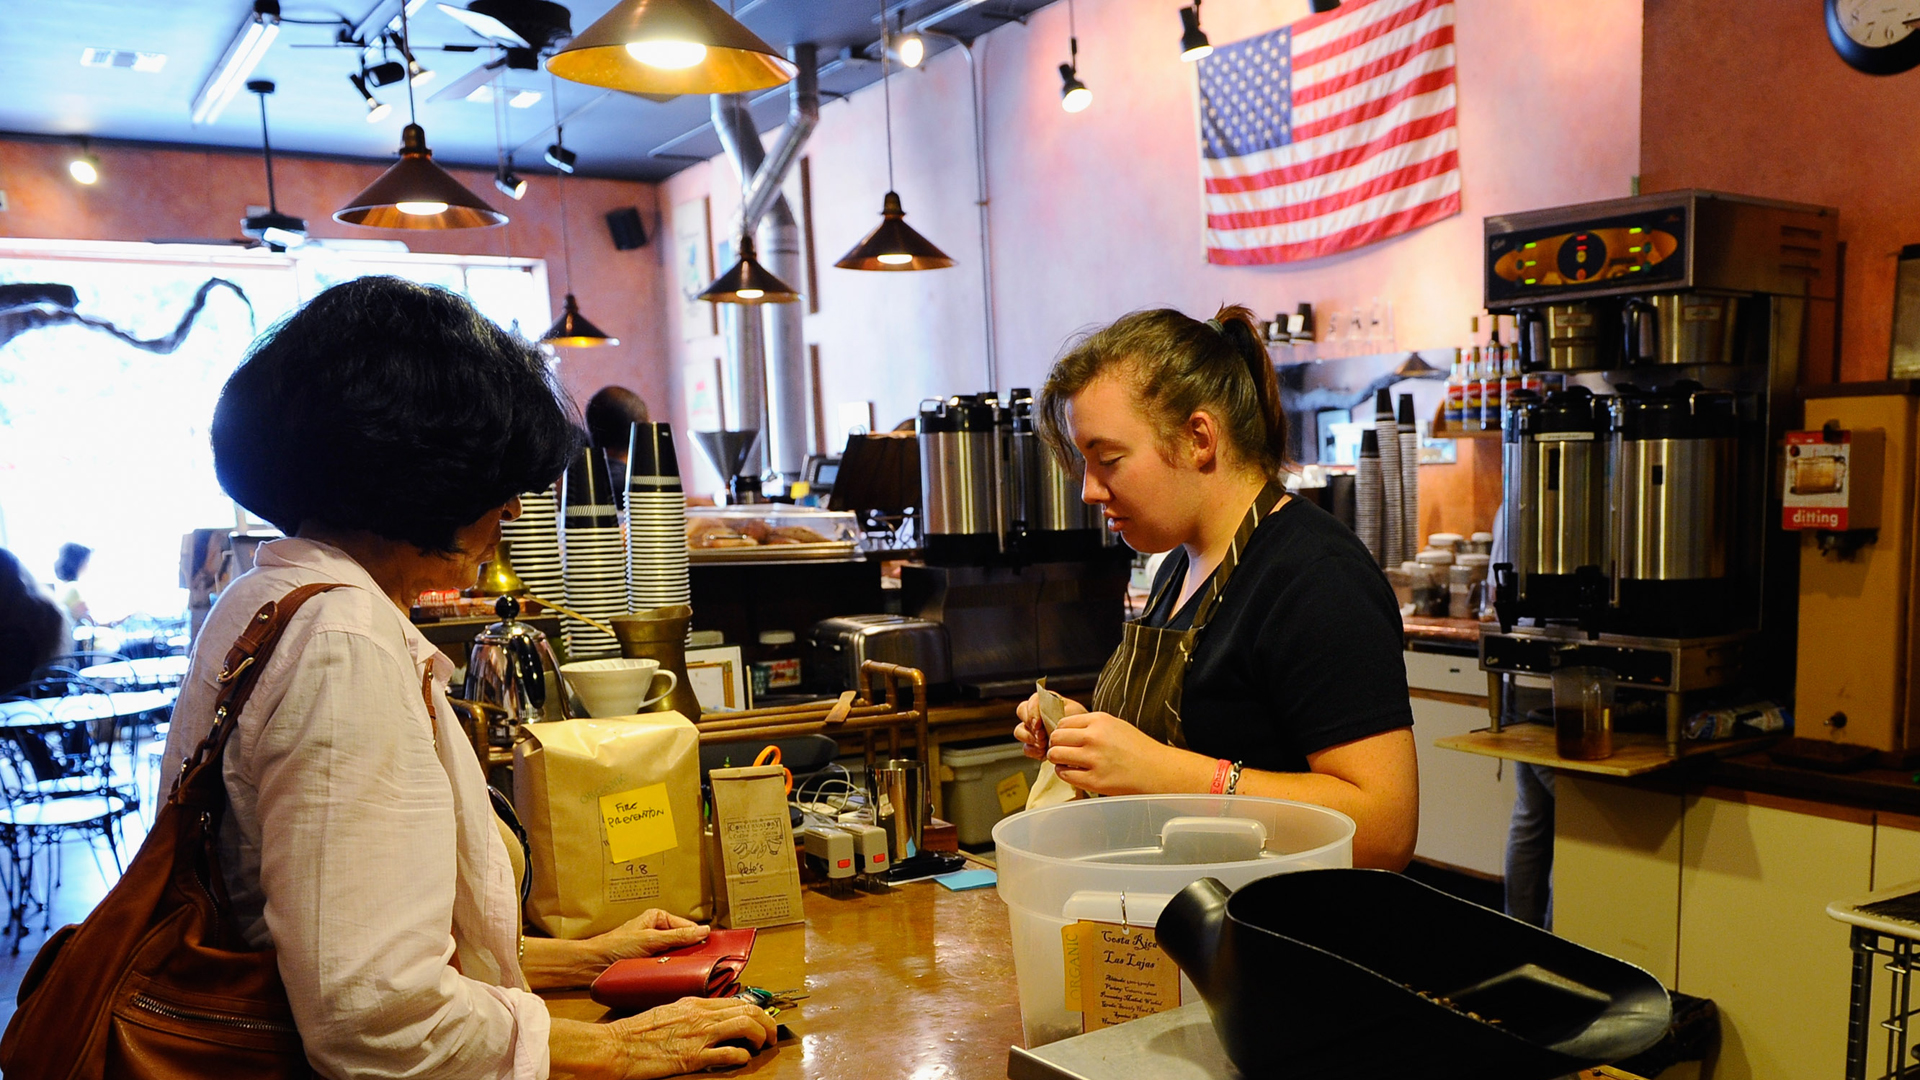 A customer buys a cup of coffee at a family-owned roasting coffeehouse in Culver City, California on Sept. 8, 2010. (Credit: Kevork Djansezian/Getty Images)